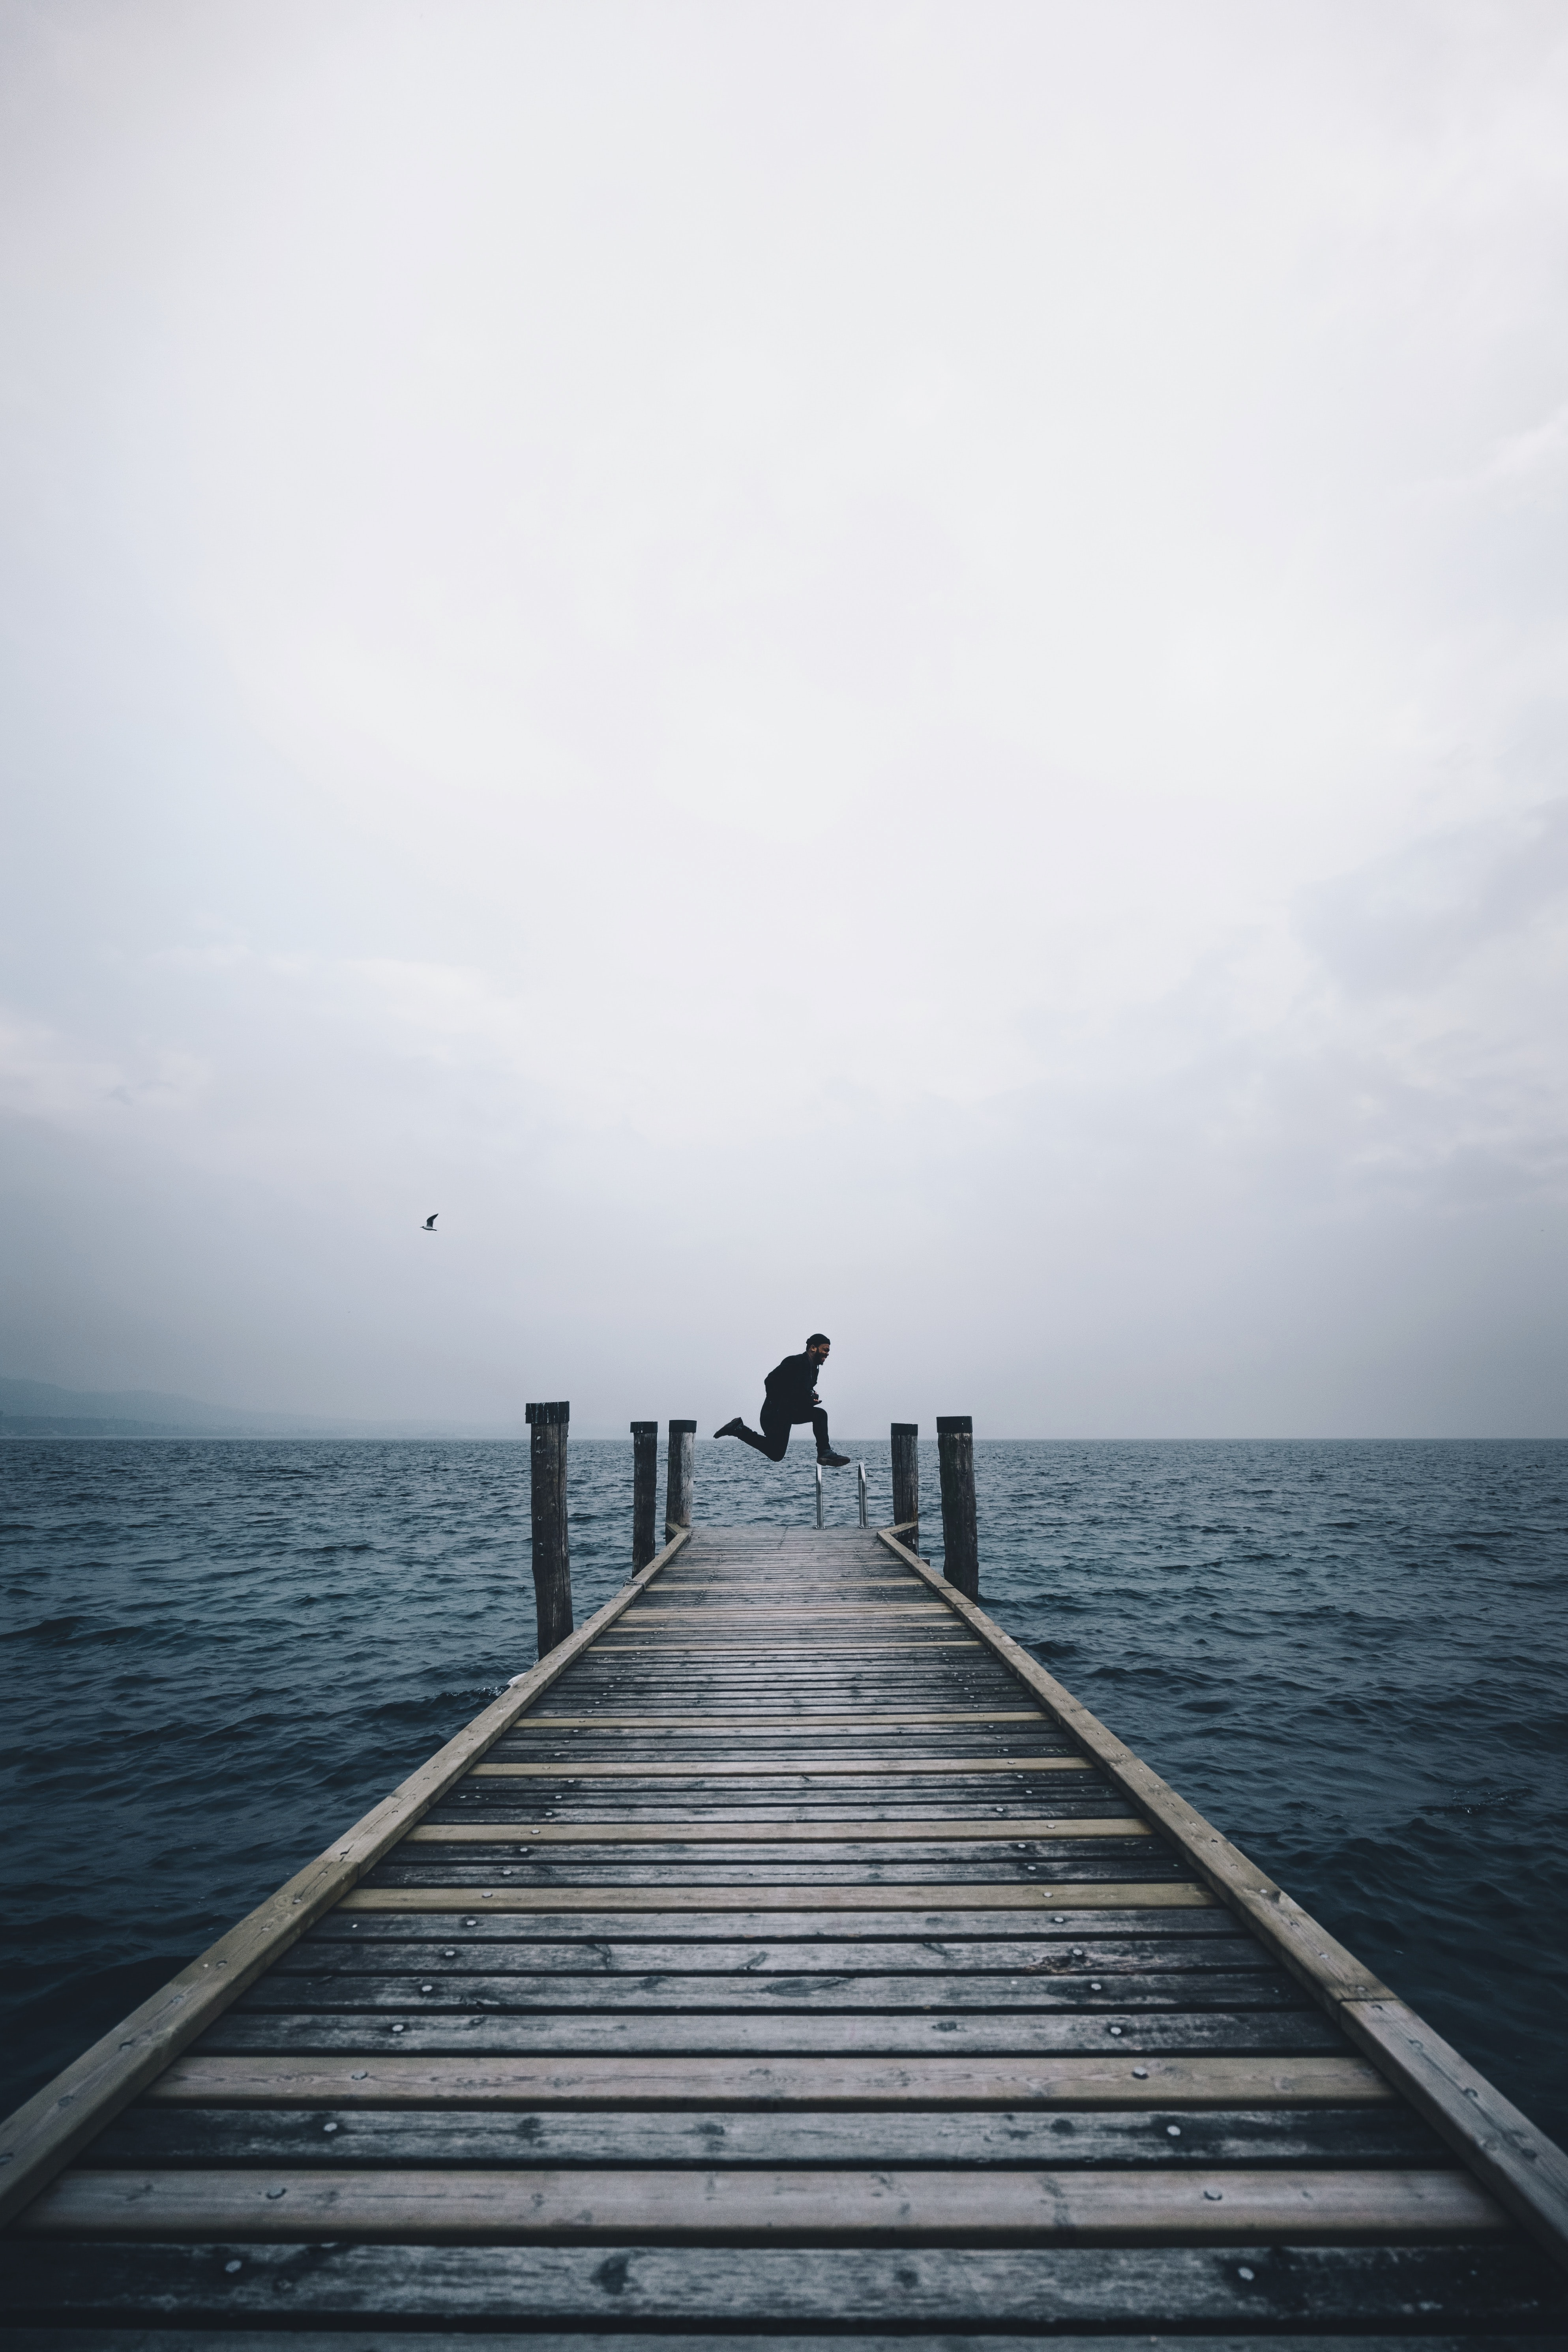 man jumping on brown wooden dock in middle of body of water